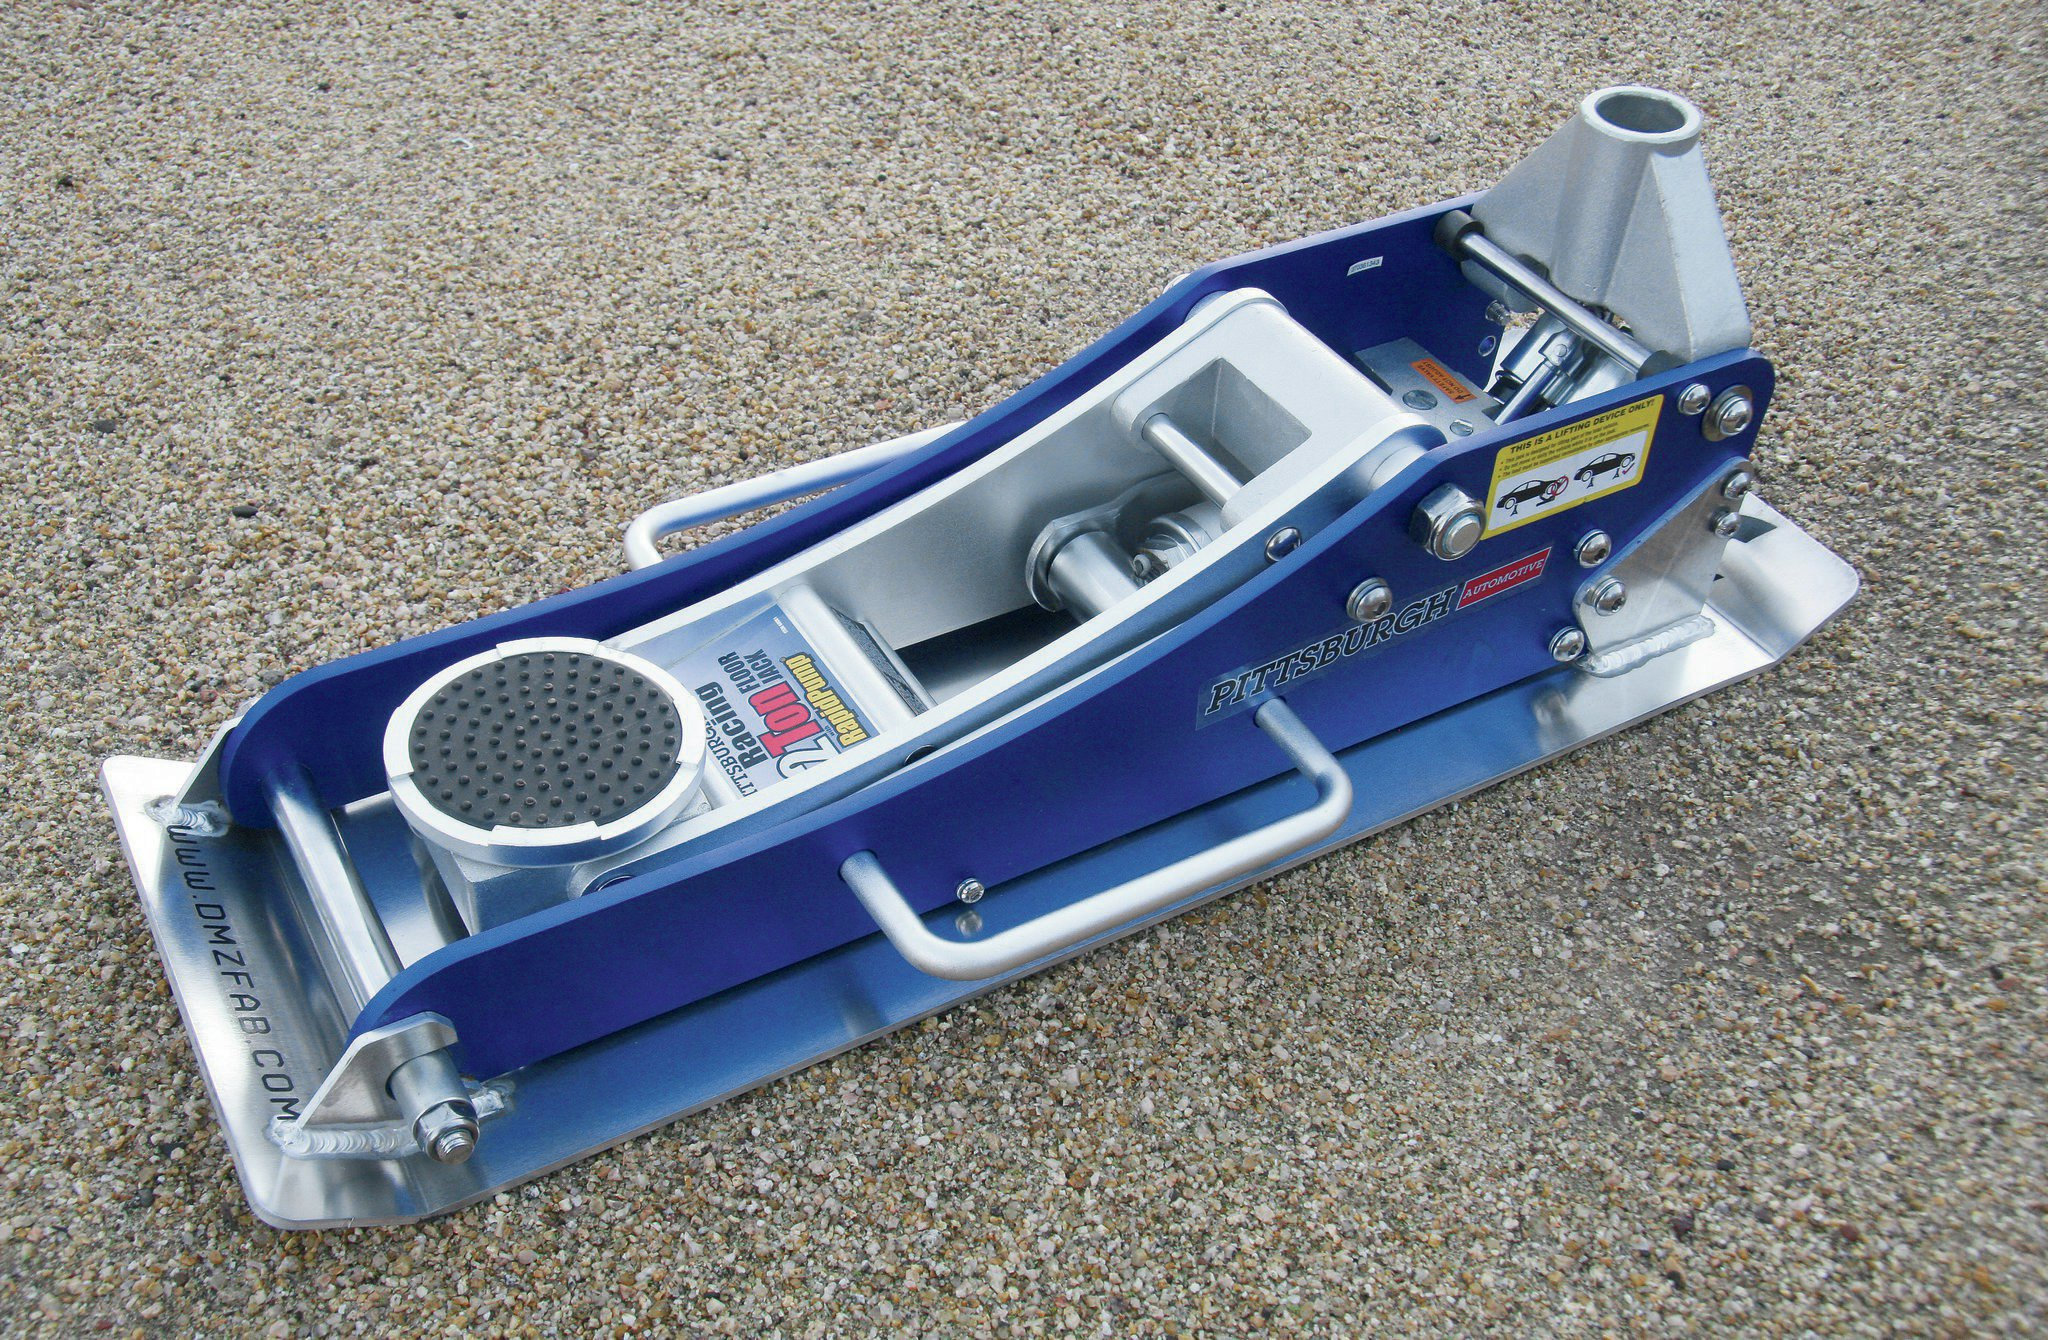 On a lot of IFS and long-travel vehicles, it's not uncommon to carry a hydraulic floor jack. This is especially true on race rigs. These jacks can often go very low in height and have substantial jack height ranges. The aluminum ones are more expensive but considerably lighter than the steel versions, and the weight savings is welcome on an off-road rig. This is a Harbor Freight aluminum racing jack. These have proven themselves to offer good quality and value for weekend warriors. The sand skid is from DMZ Fab and replaces the stock wheels so the jack can be more easily maneuvered in the dirt.